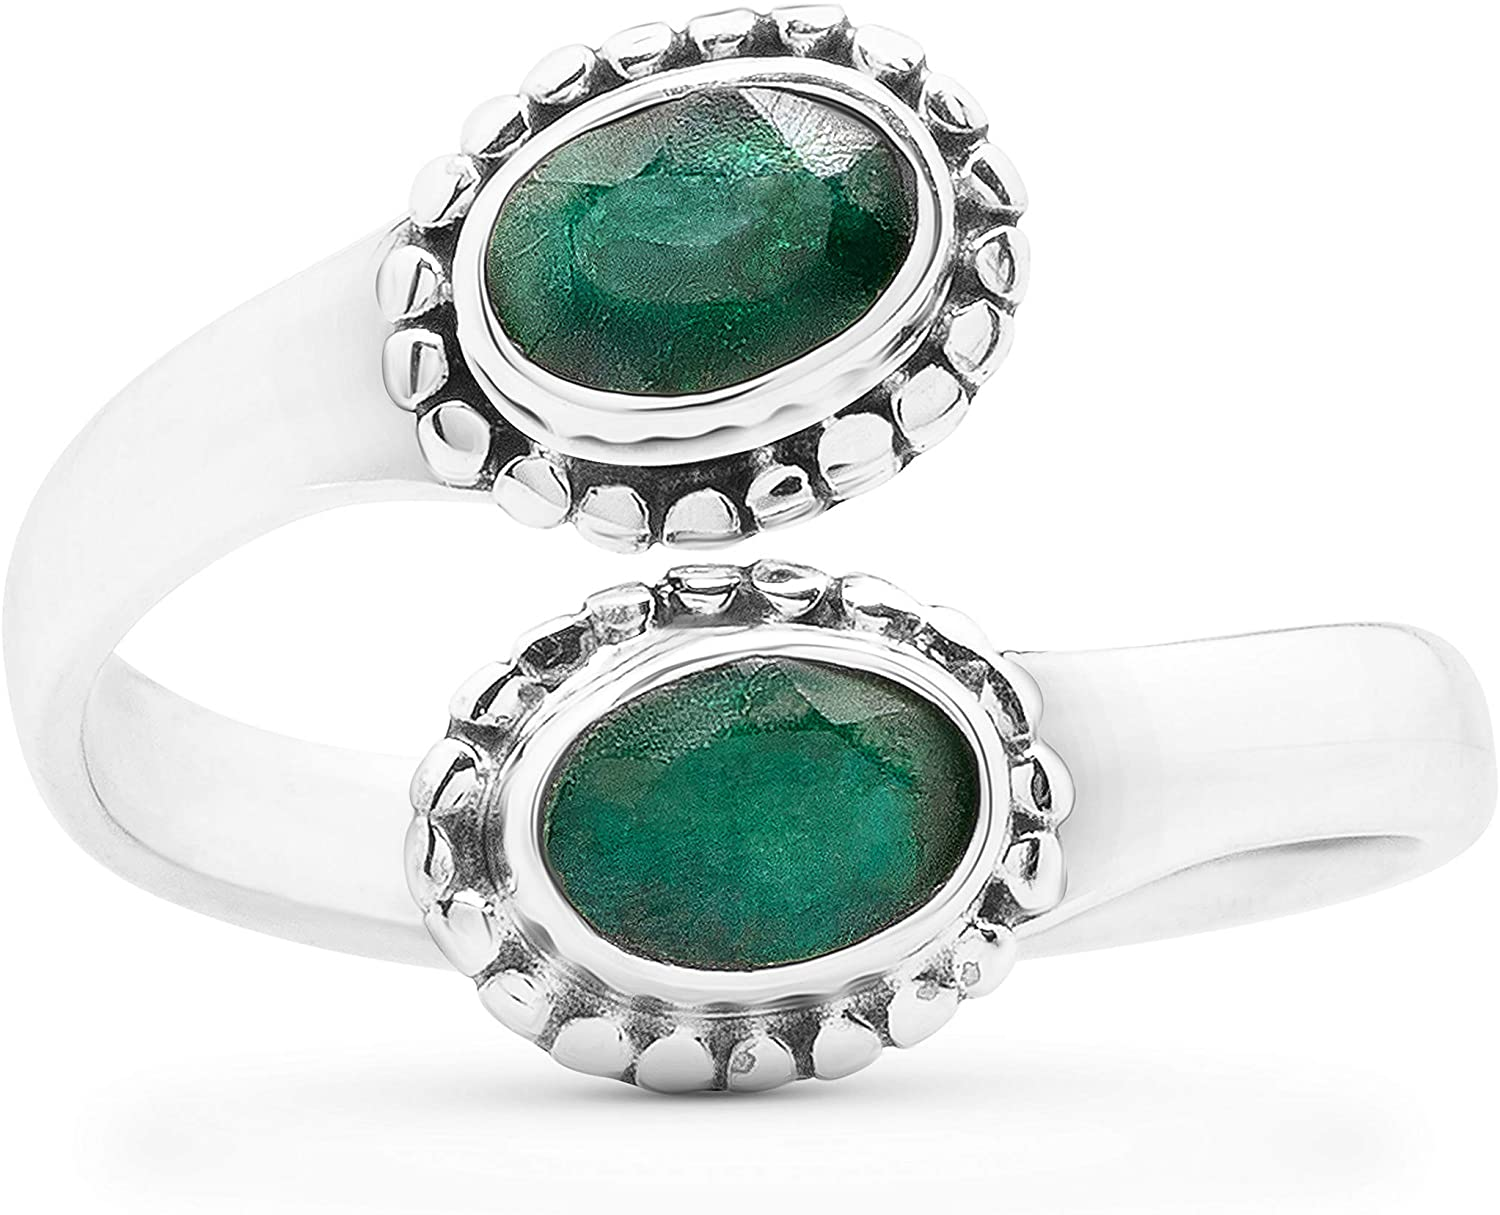 Koral Jewelry Adjustable Created Emerald Oval Two Stones Ring 925 Sterling Silver Ethnic Vintage Tribal Gipsy Boho Chic